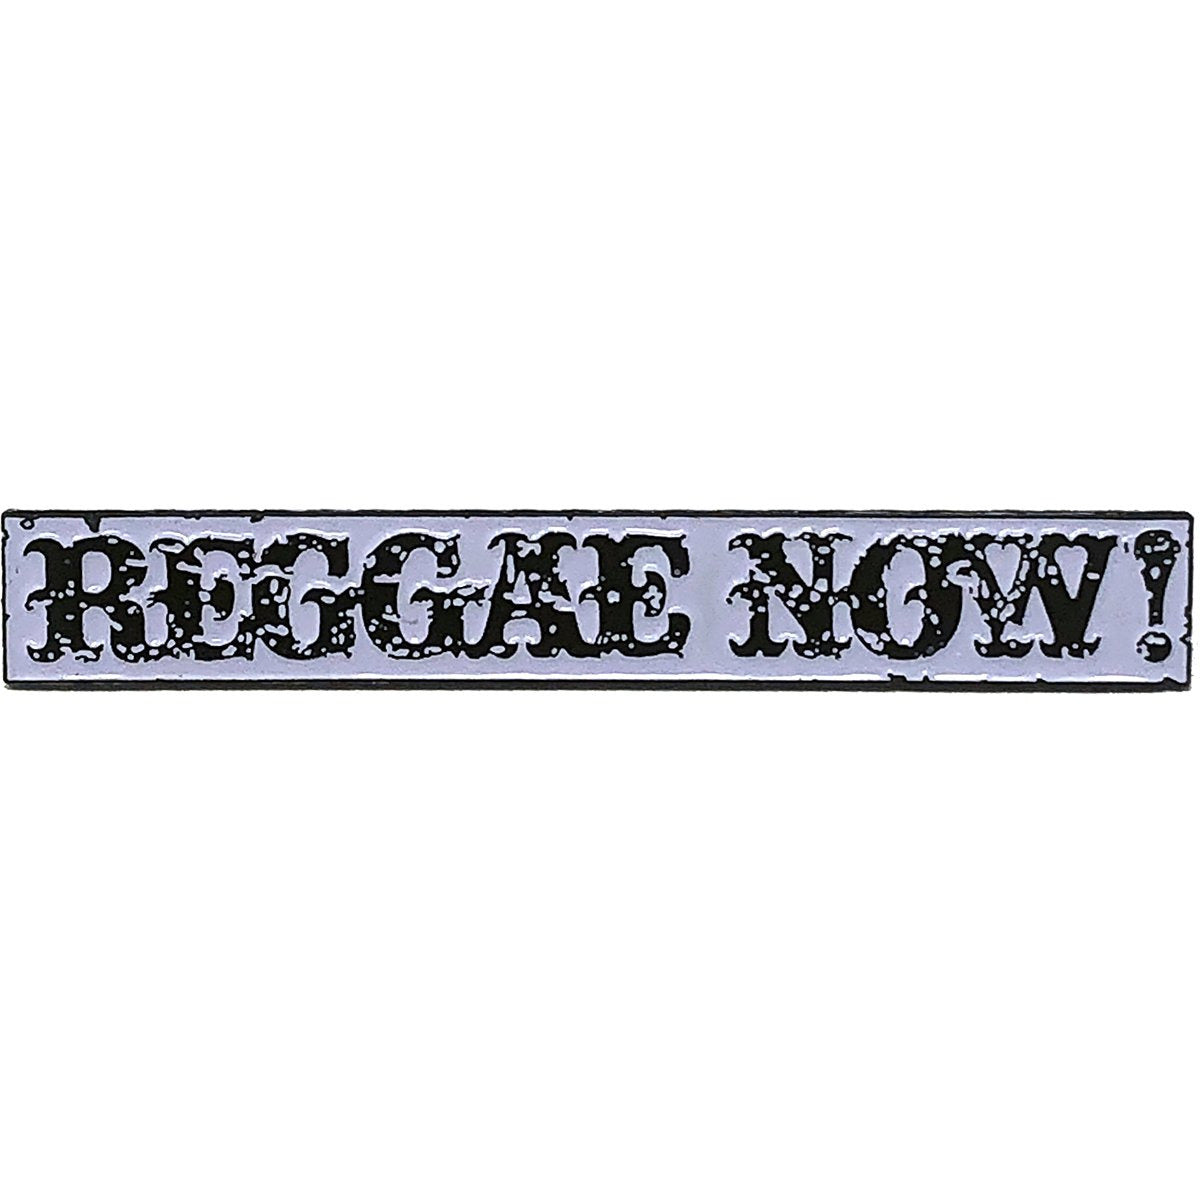 "The Aggrolites - Reggae Now! Text - 2.5"" Enamel Pin"